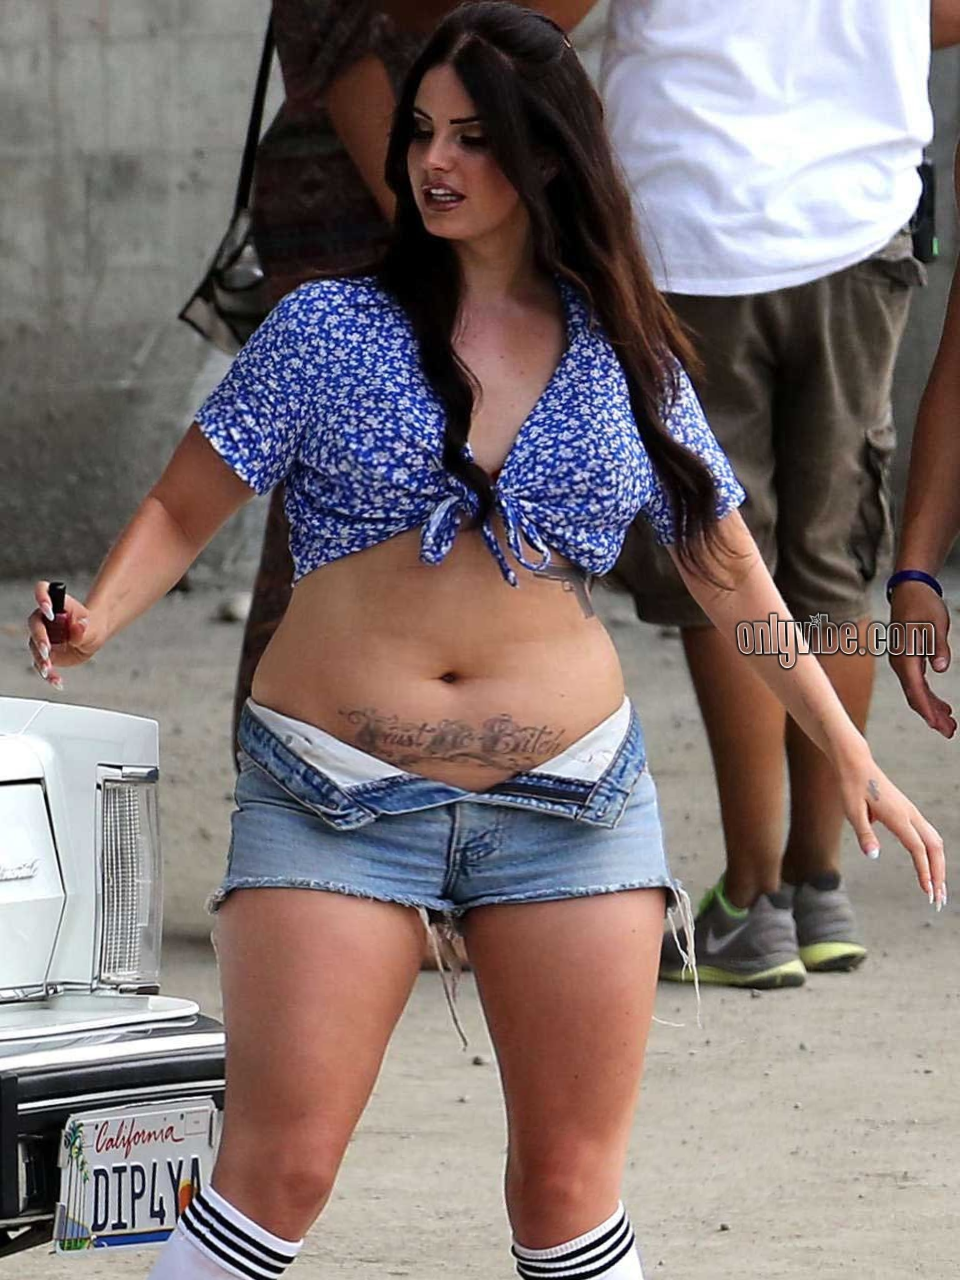 lana del rey weight gain -#main